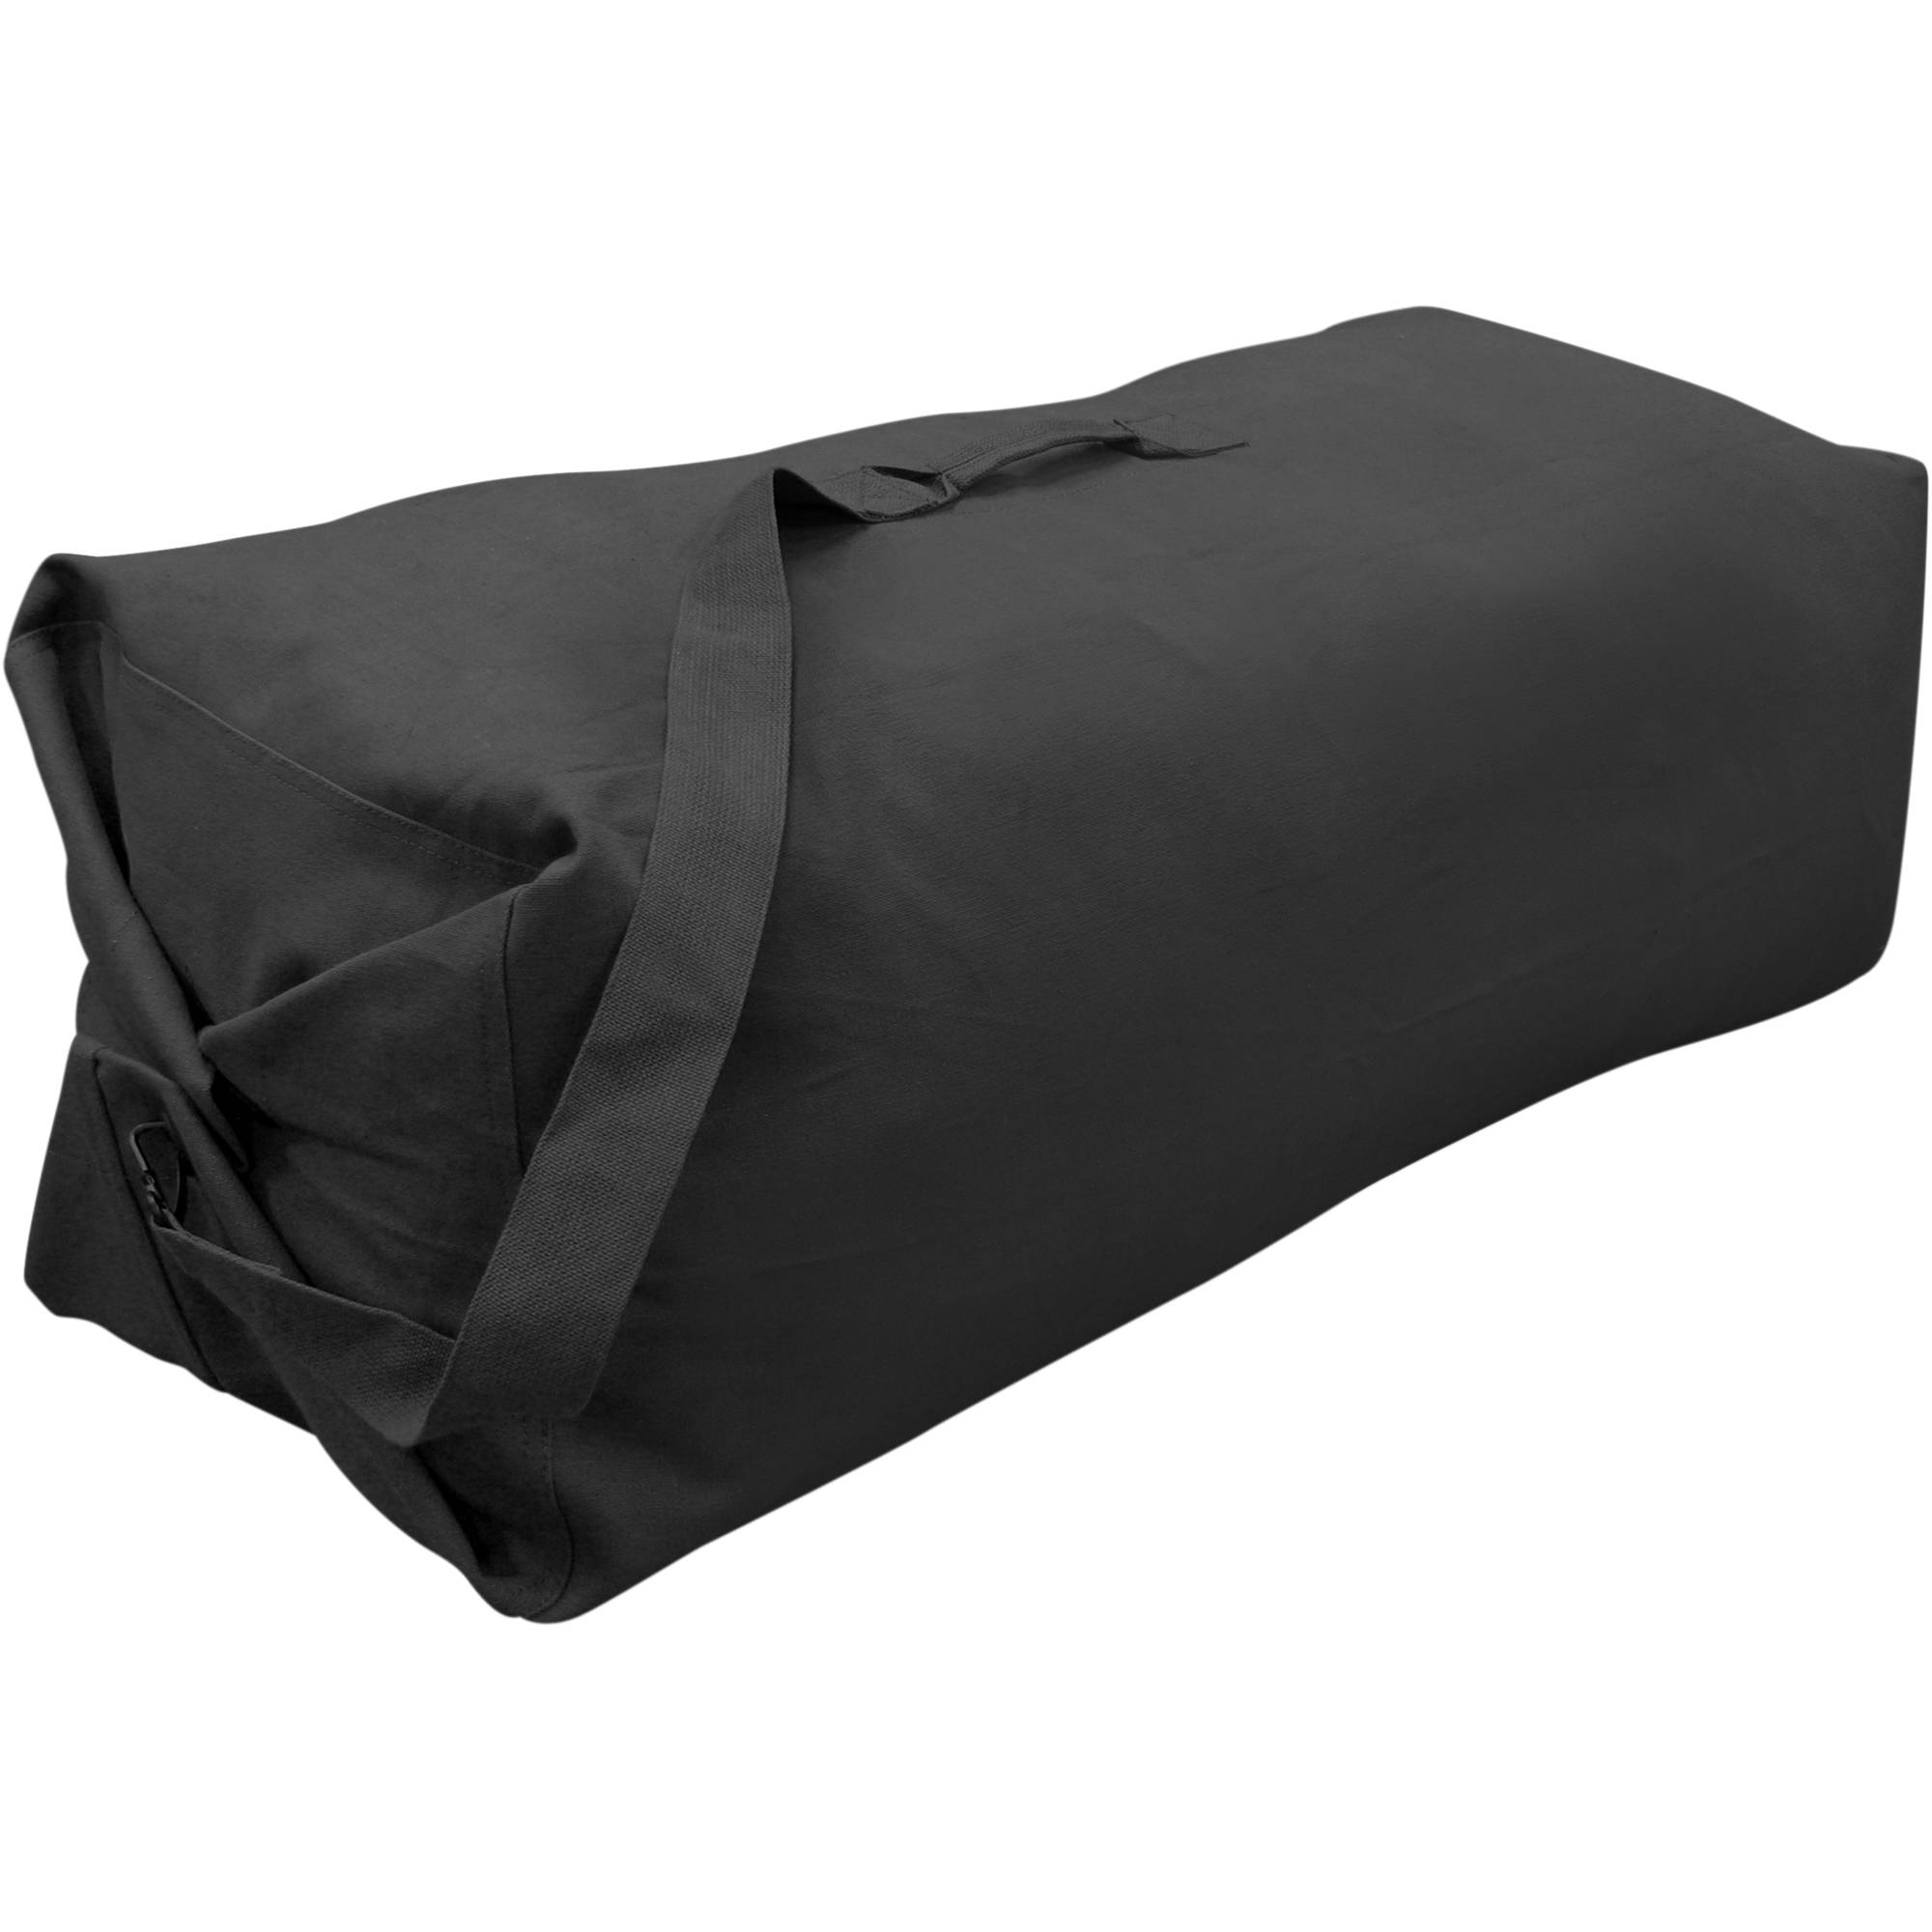 Stansport G.I. Style Cotton Duffel Bag with Strap